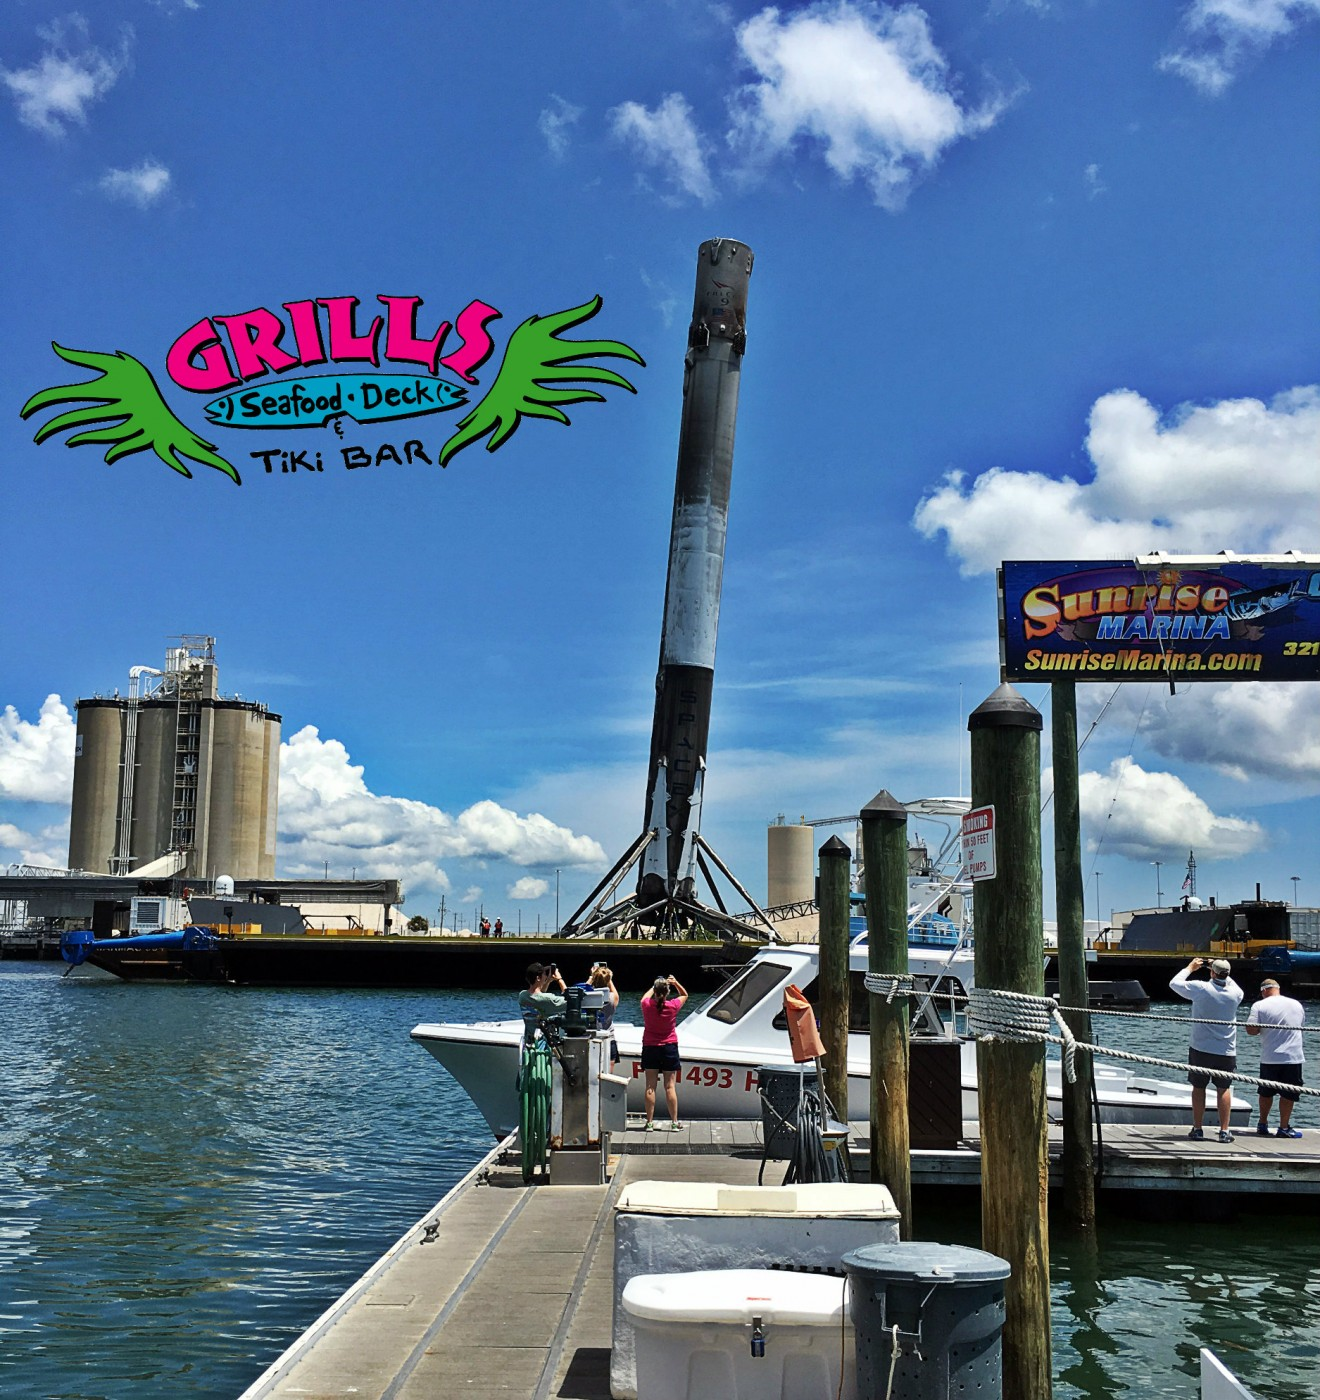 Spacex falcon9 arrives back in port canaveral grills seafood deck tiki bar - Grills seafood deck tiki bar ...